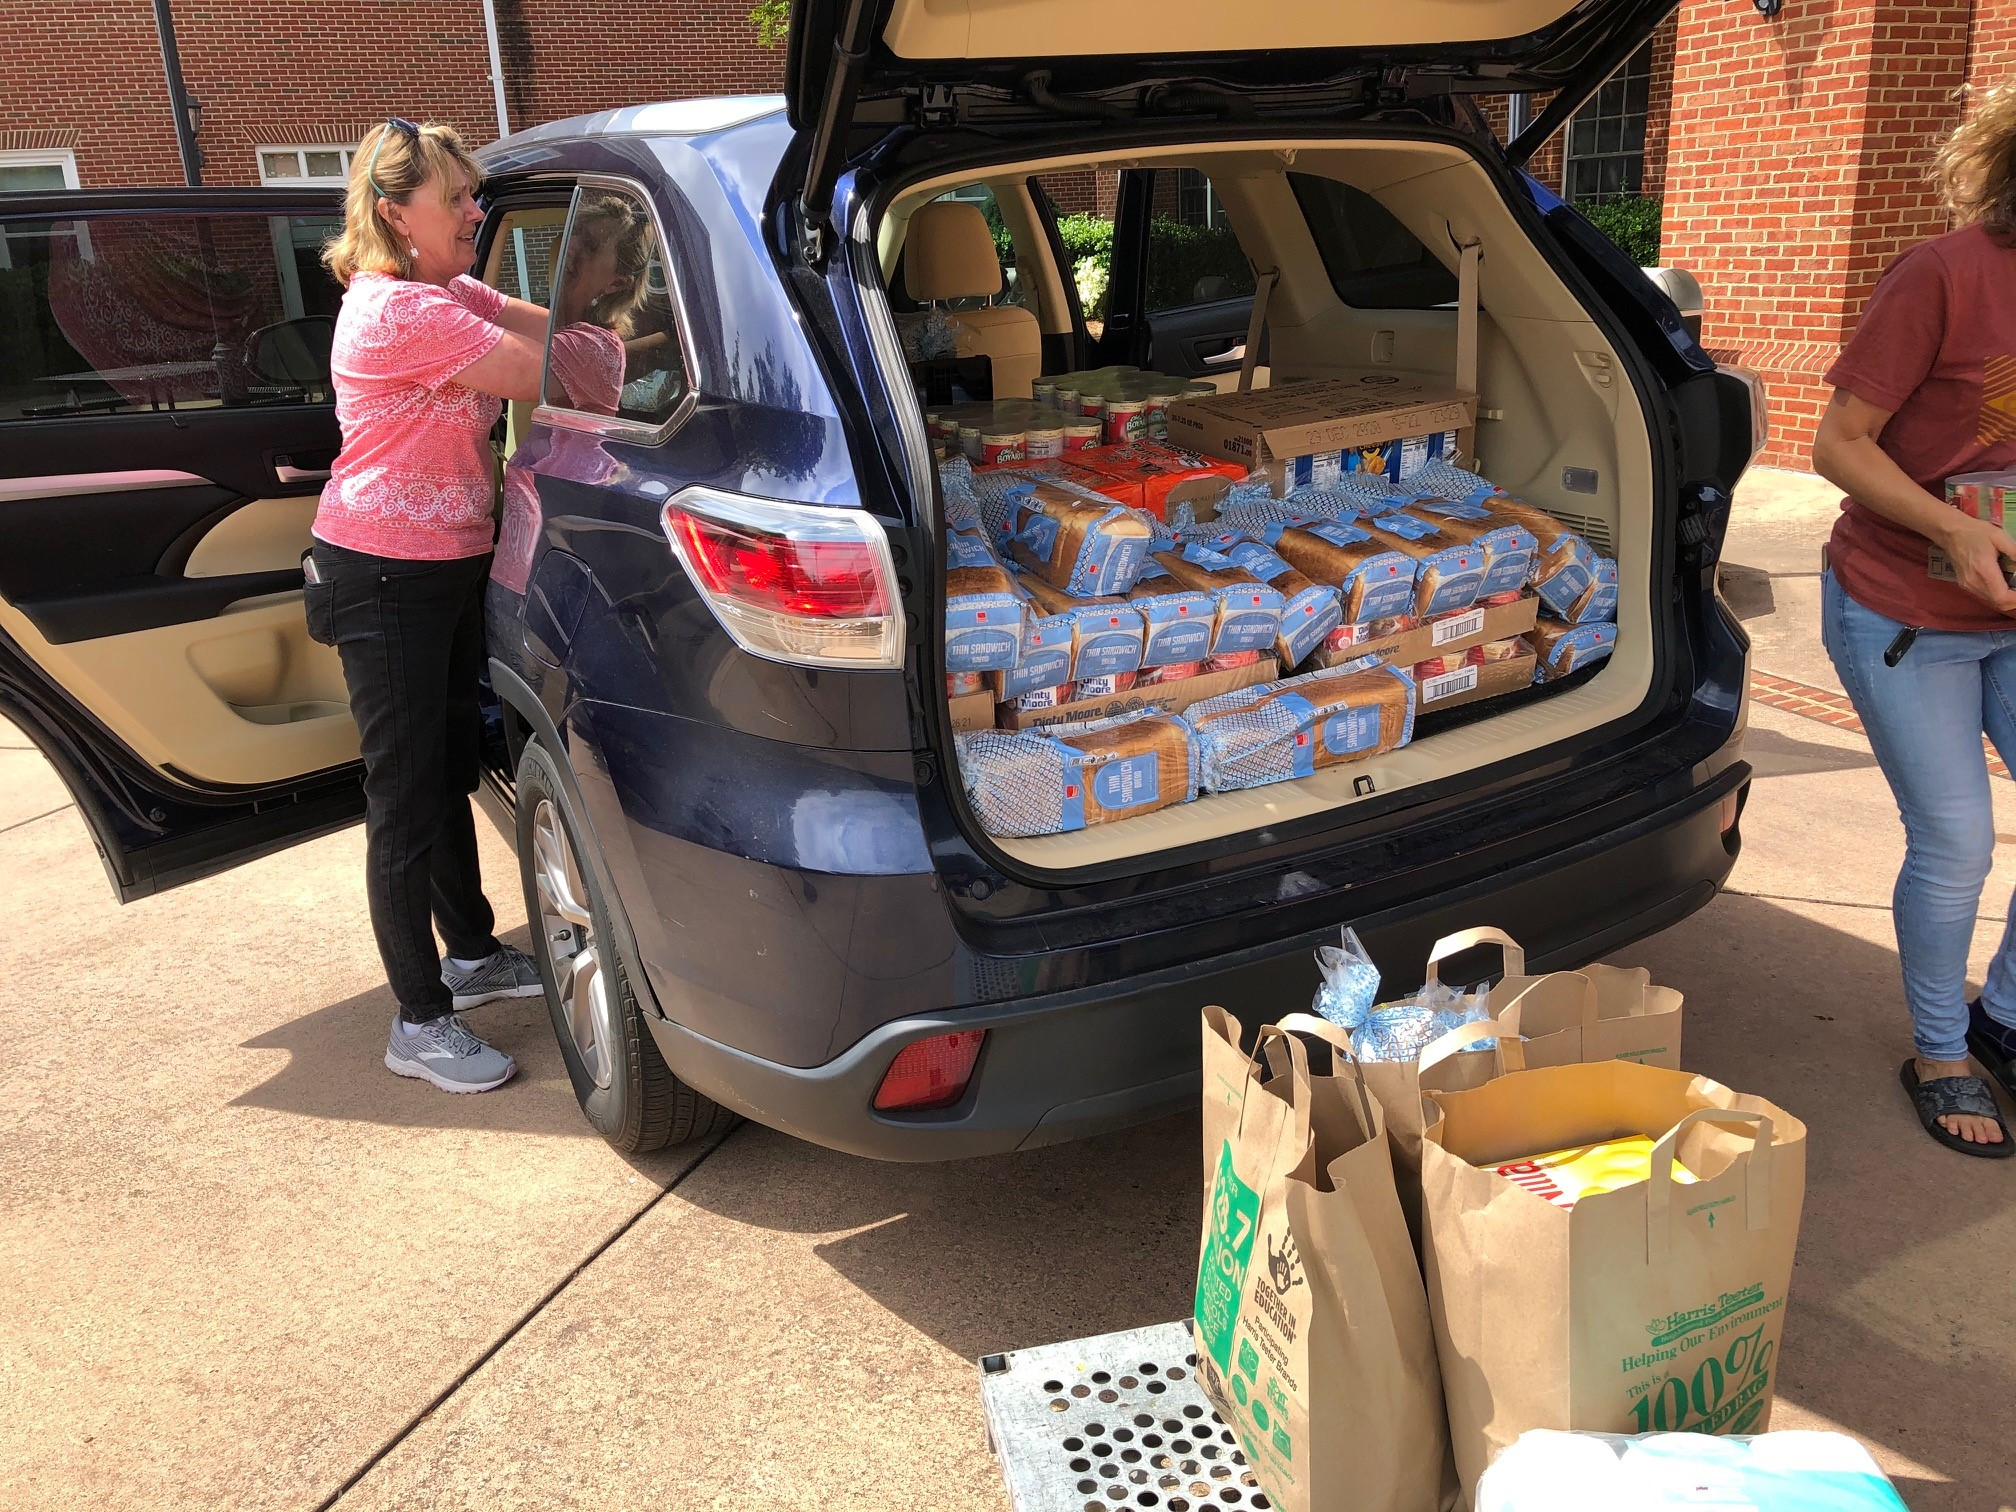 Volunteers unloading groceries